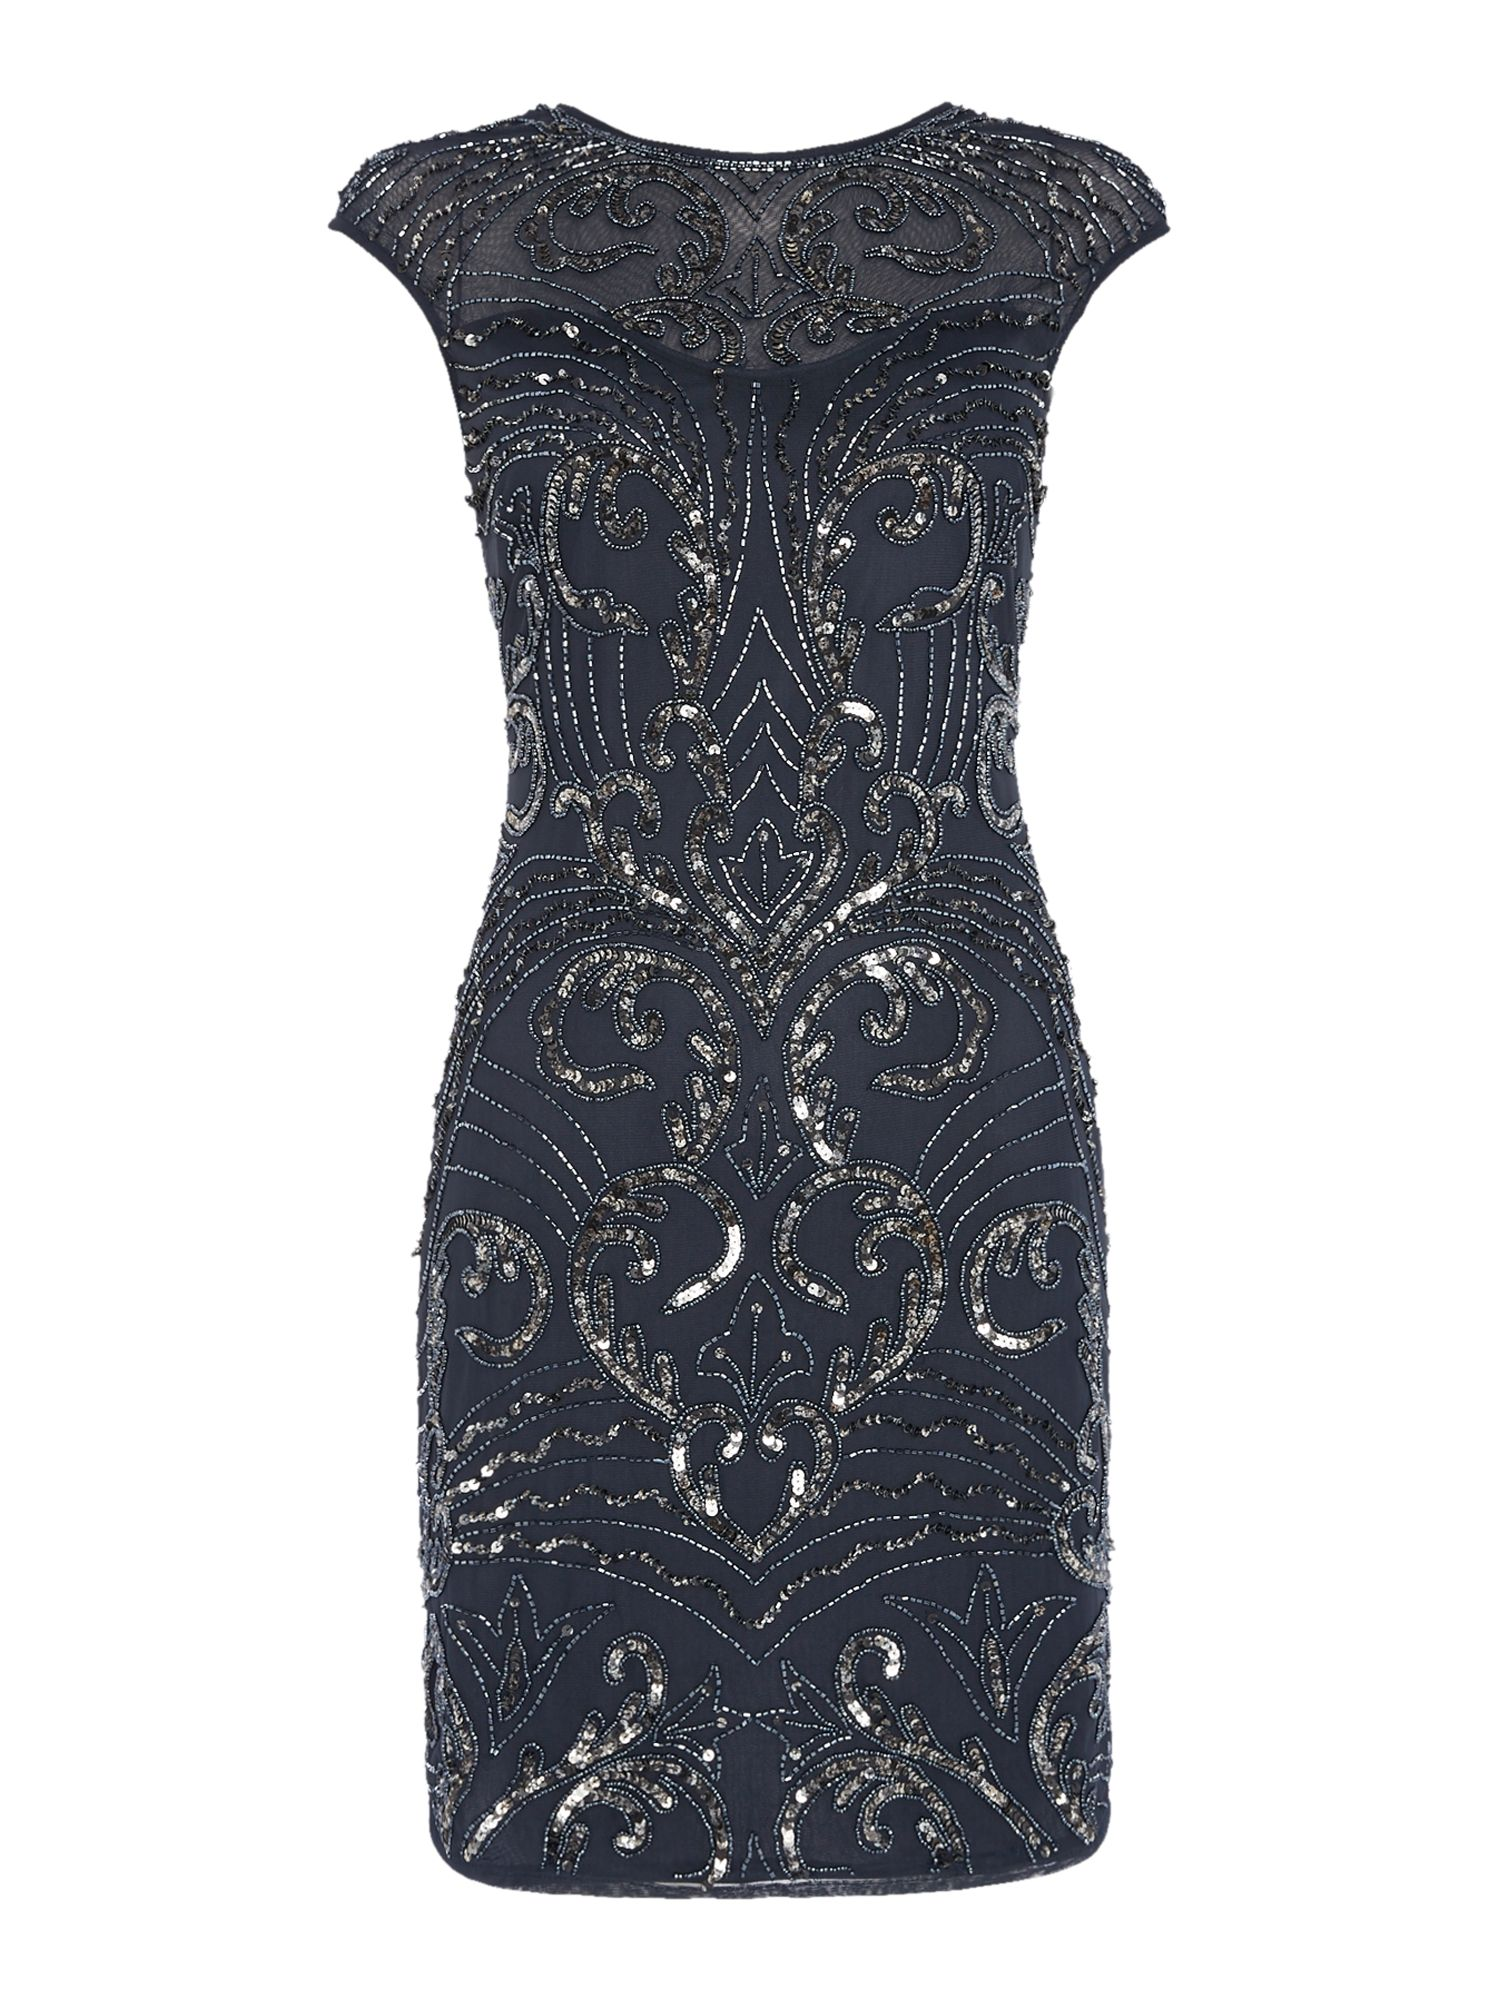 Lace and Beads Cap Sleeve Embellished Bodycon Dress Navy £85.00 AT vintagedancer.com